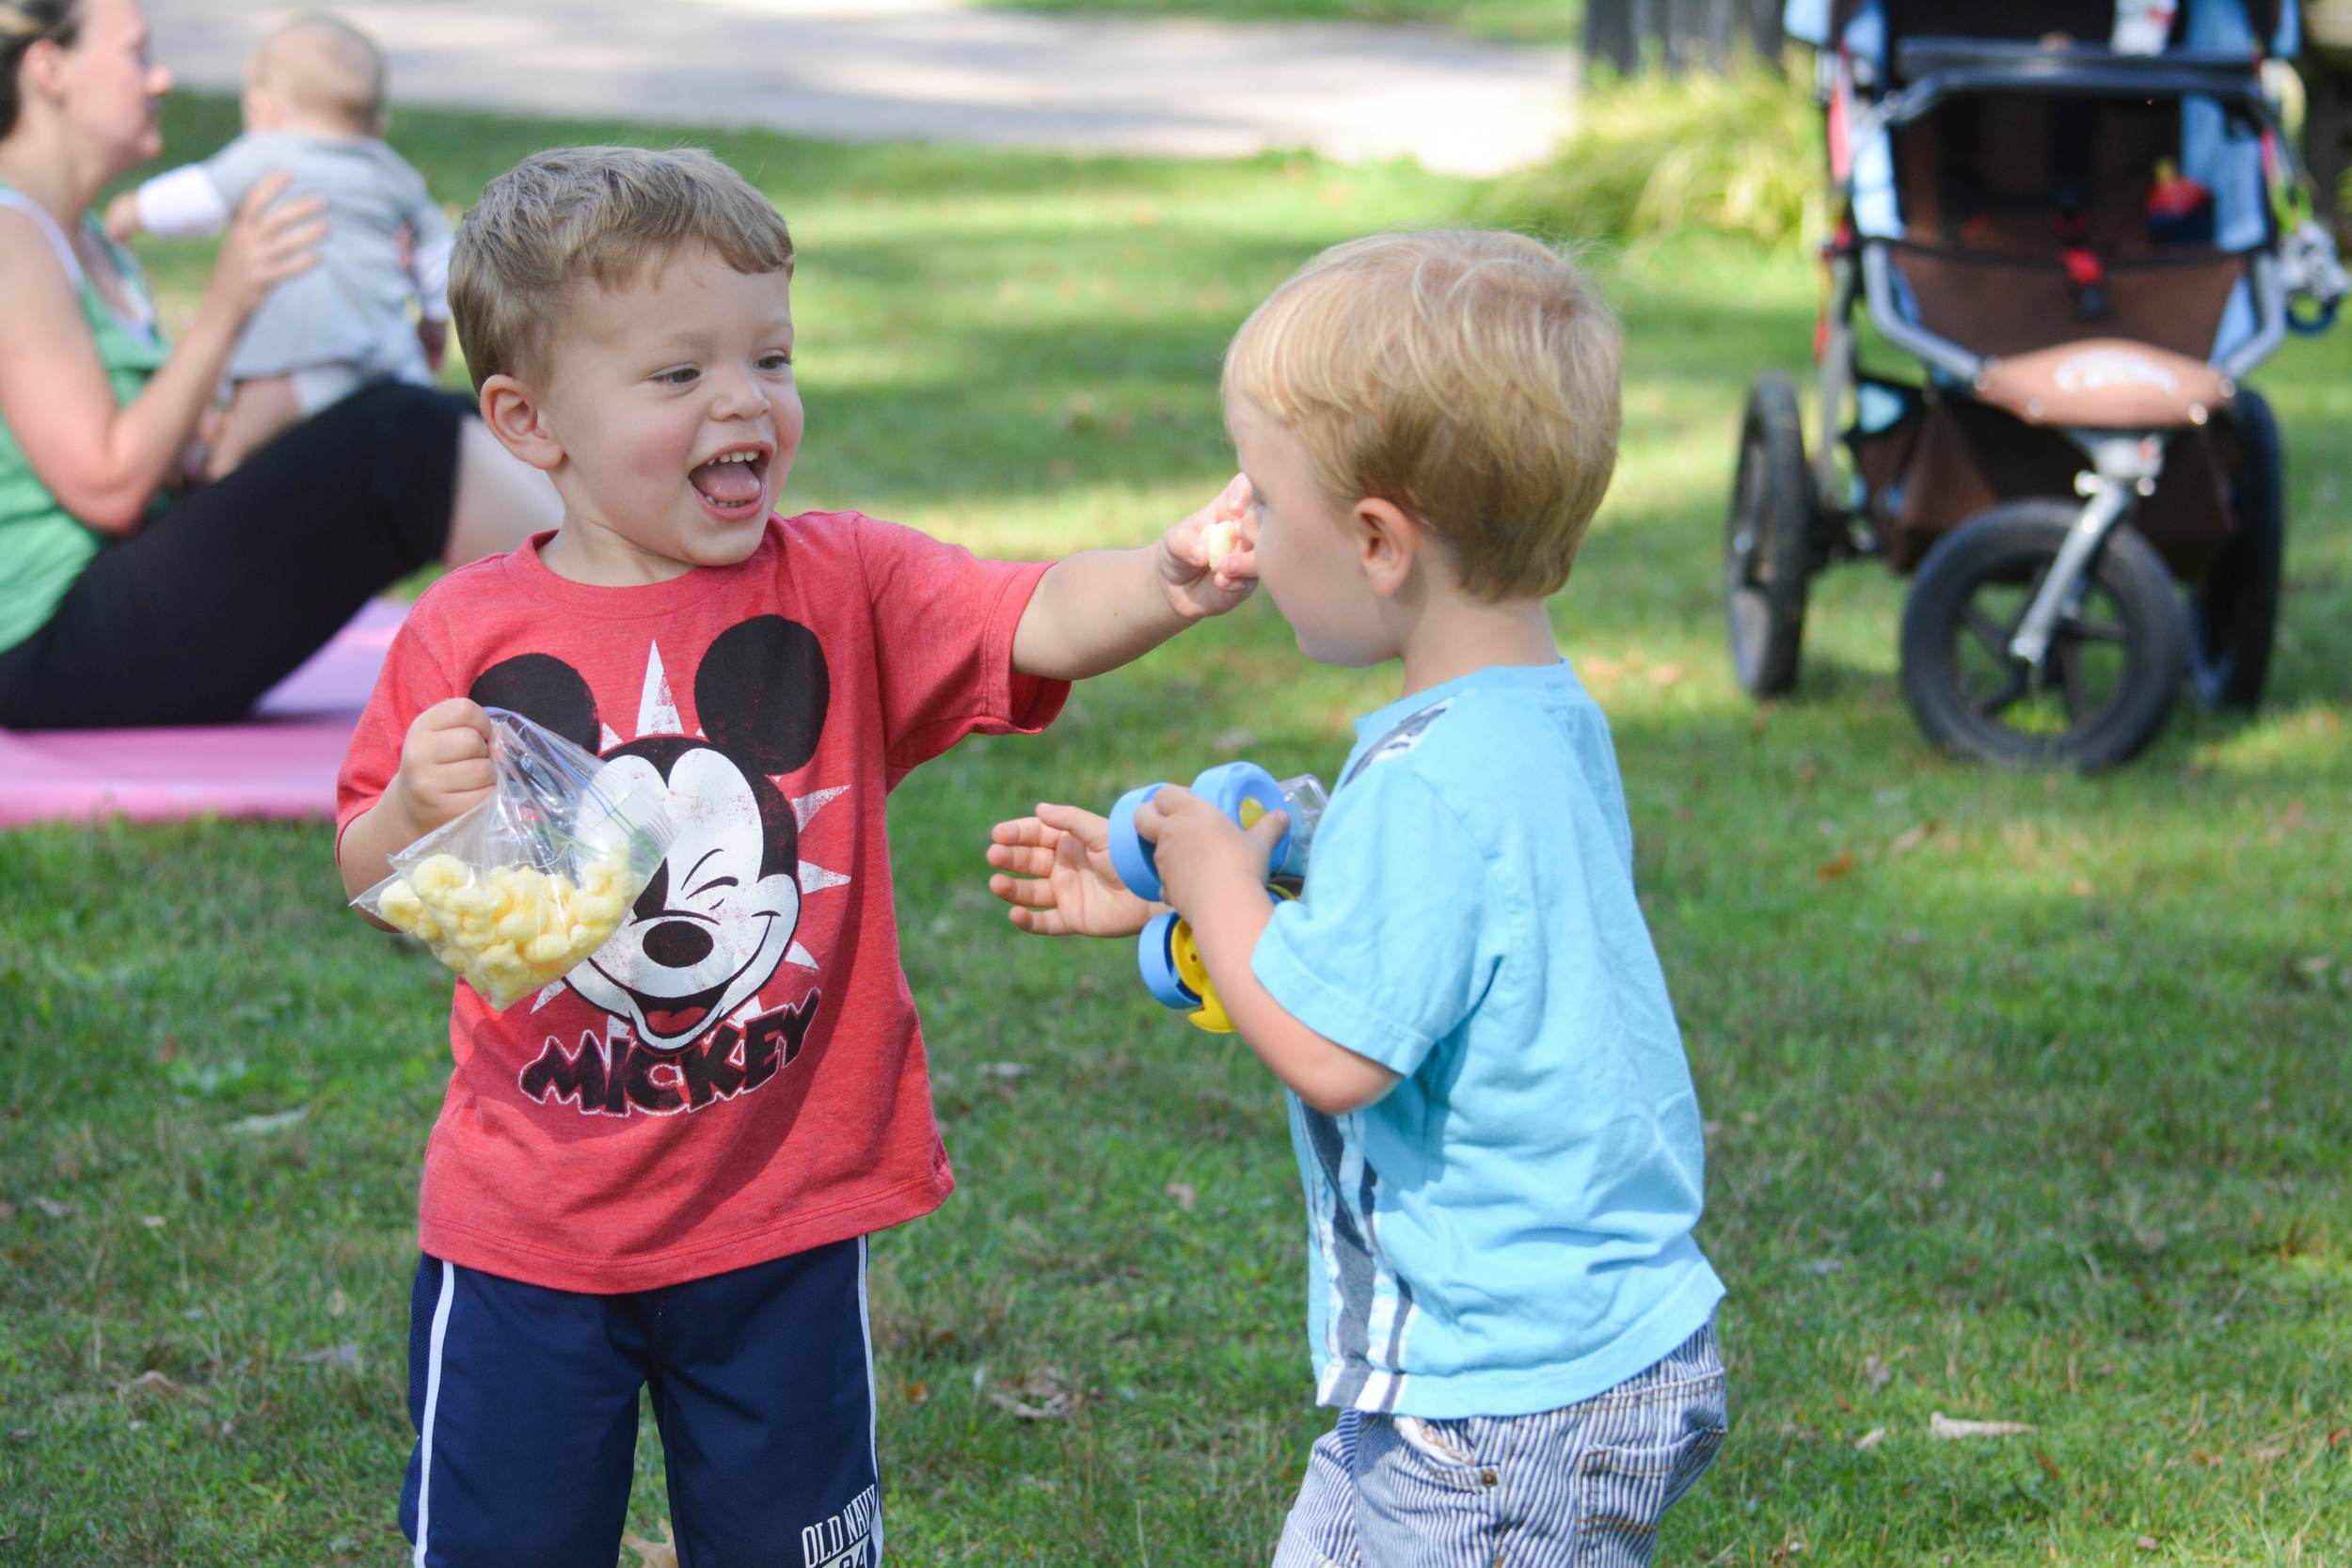 These boys became friends after coming with their mothers to the Stroller Strides classes. If you ask each who his best friend is, he will name the other.